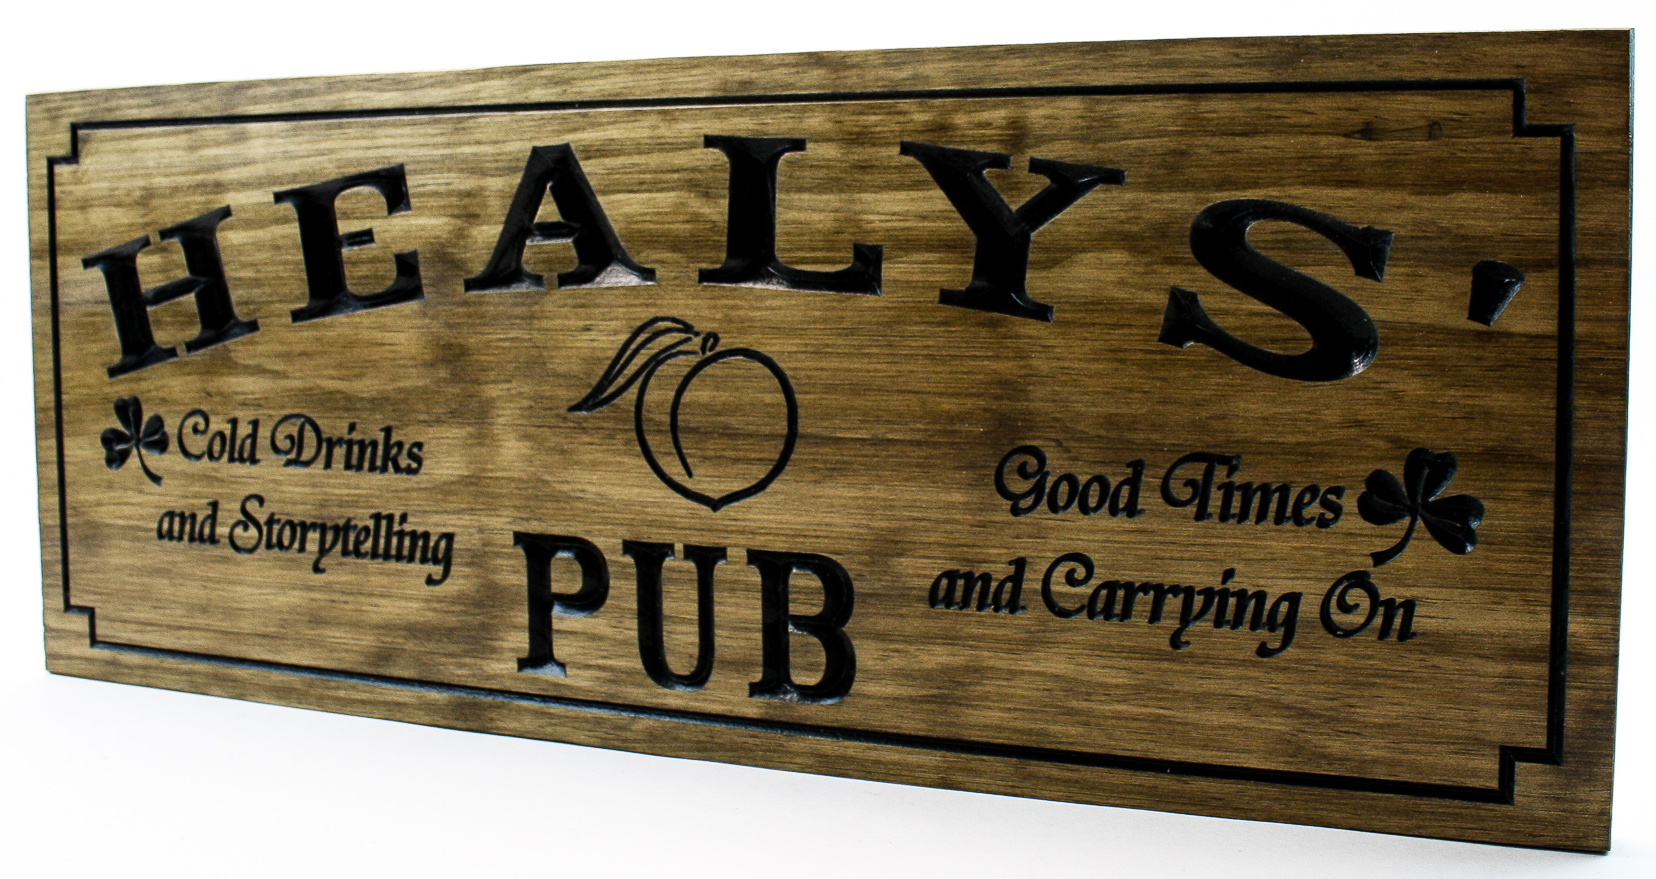 Home bar sign- wooden bar sign, home PUB sign, rustic wooden pub sign for your home bar